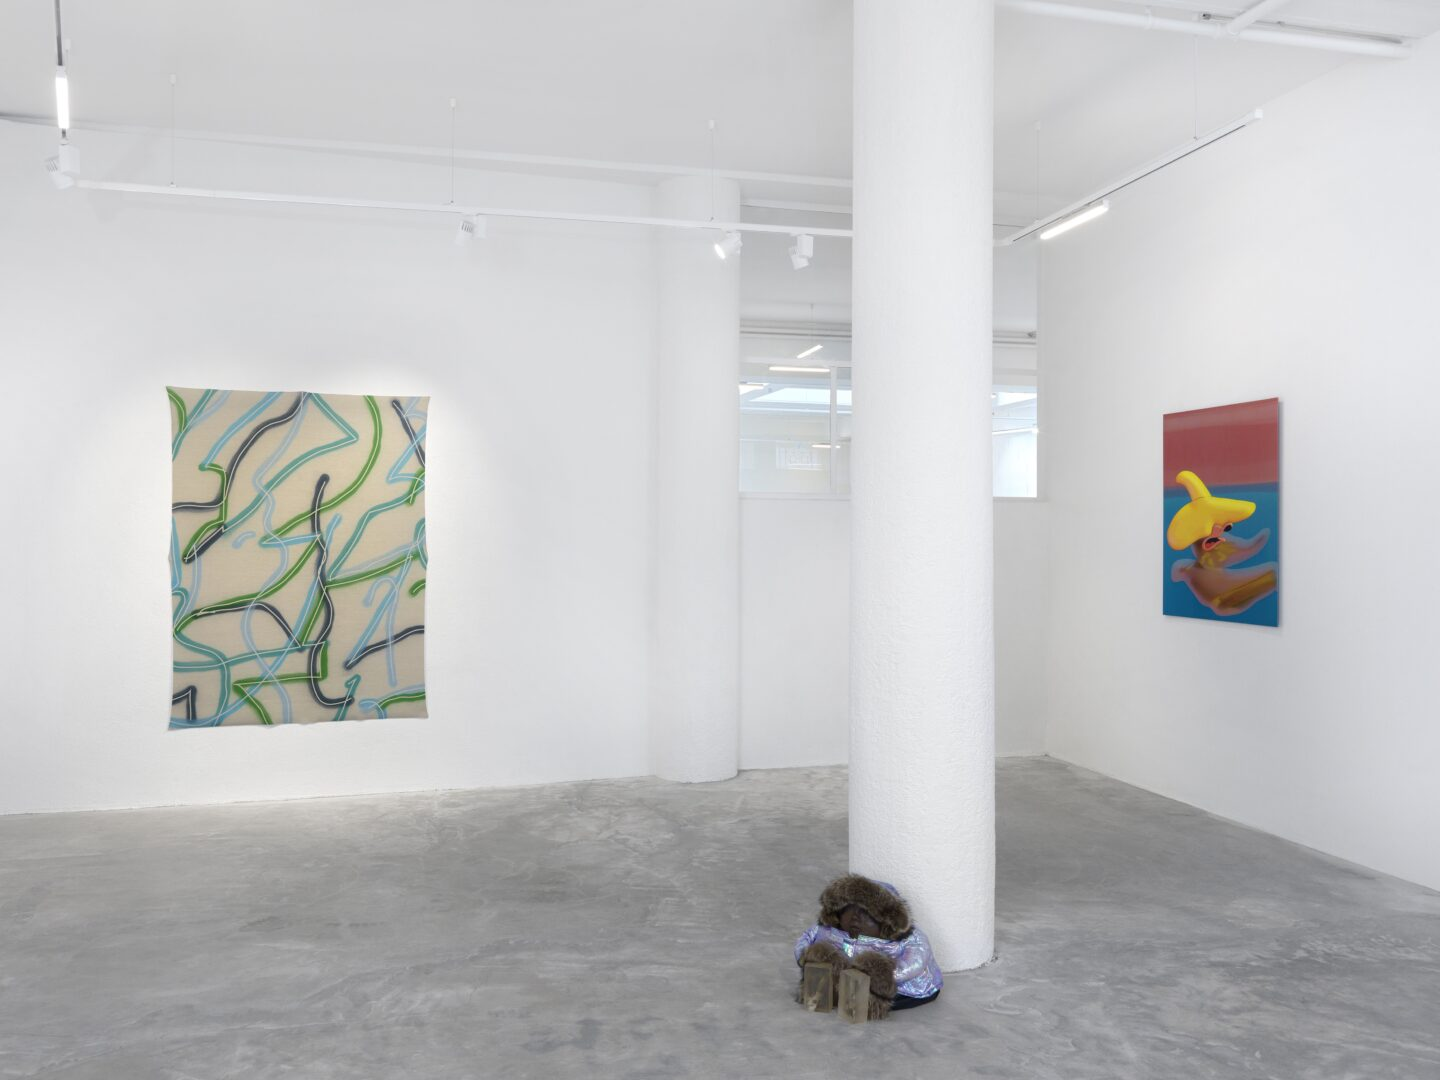 Exhibition View Groupshow «Swiss Made, Chapter II; view on Christelle Kahla, Dermaplast, 2018, Denis Savary, Öyvind, 2015» at Ribordy Thetaz, Geneva, 2020 / Photo: Annik Wetter / Courtesy: the artists and Ribordy Thetaz